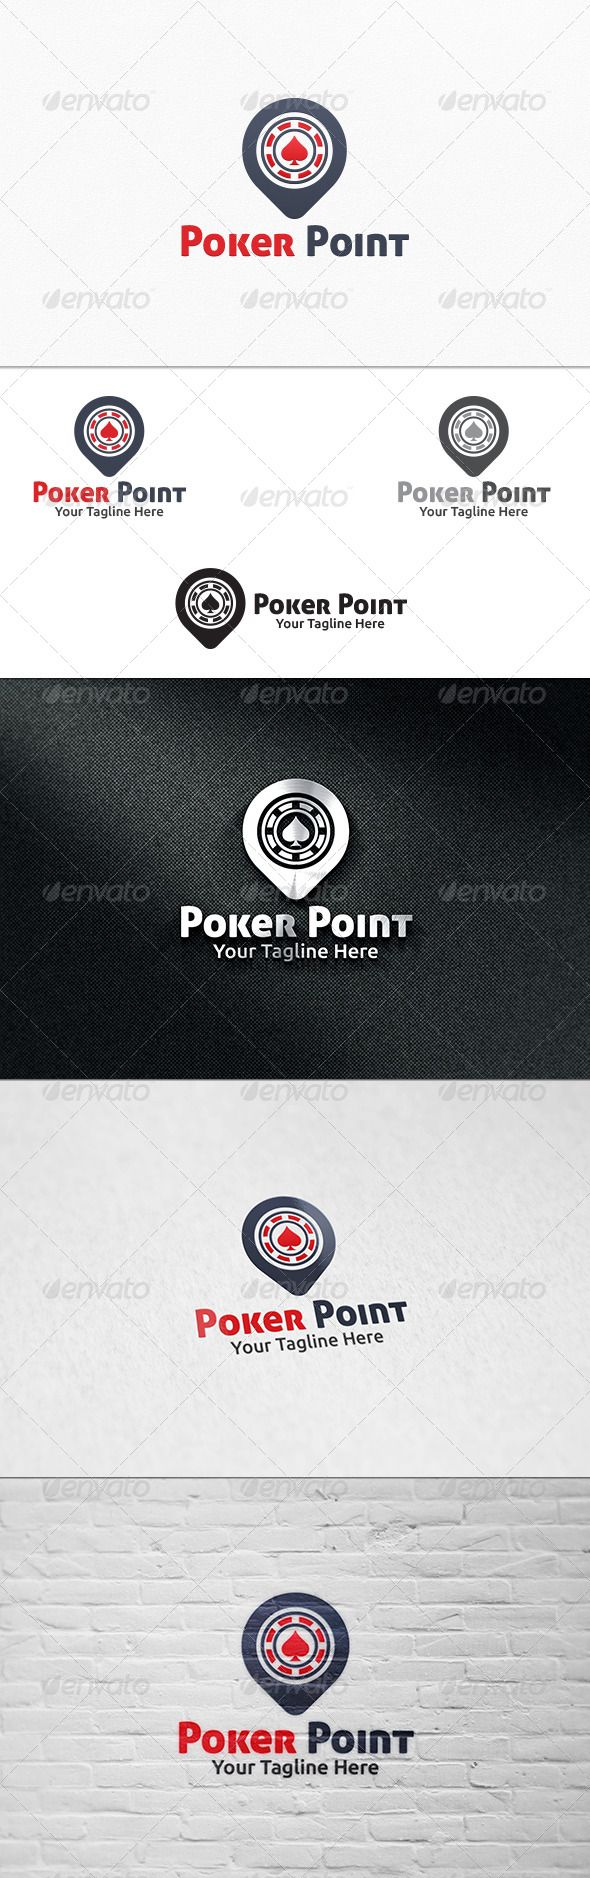 casino poker online royal secrets